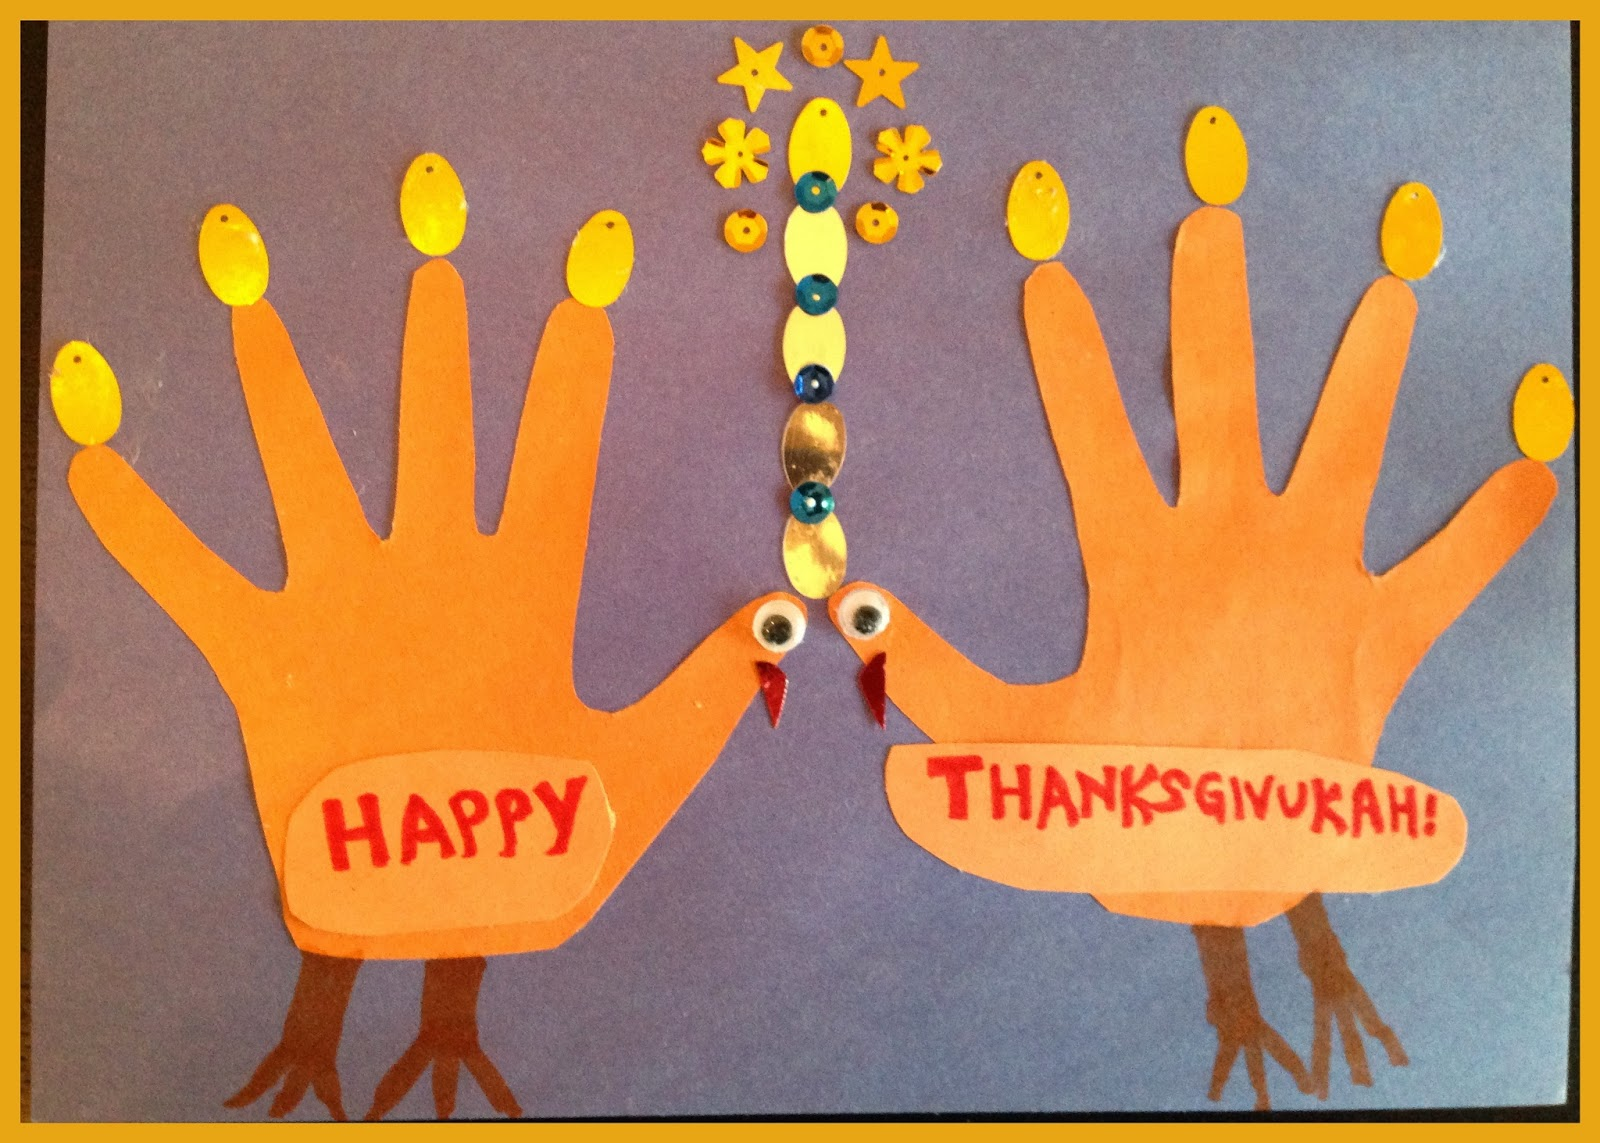 Uncategorized Handprint Menorah random handprints a nyc mom blog live from new jersey thanksgiving crafts and an itty bitty plug for great suffragist